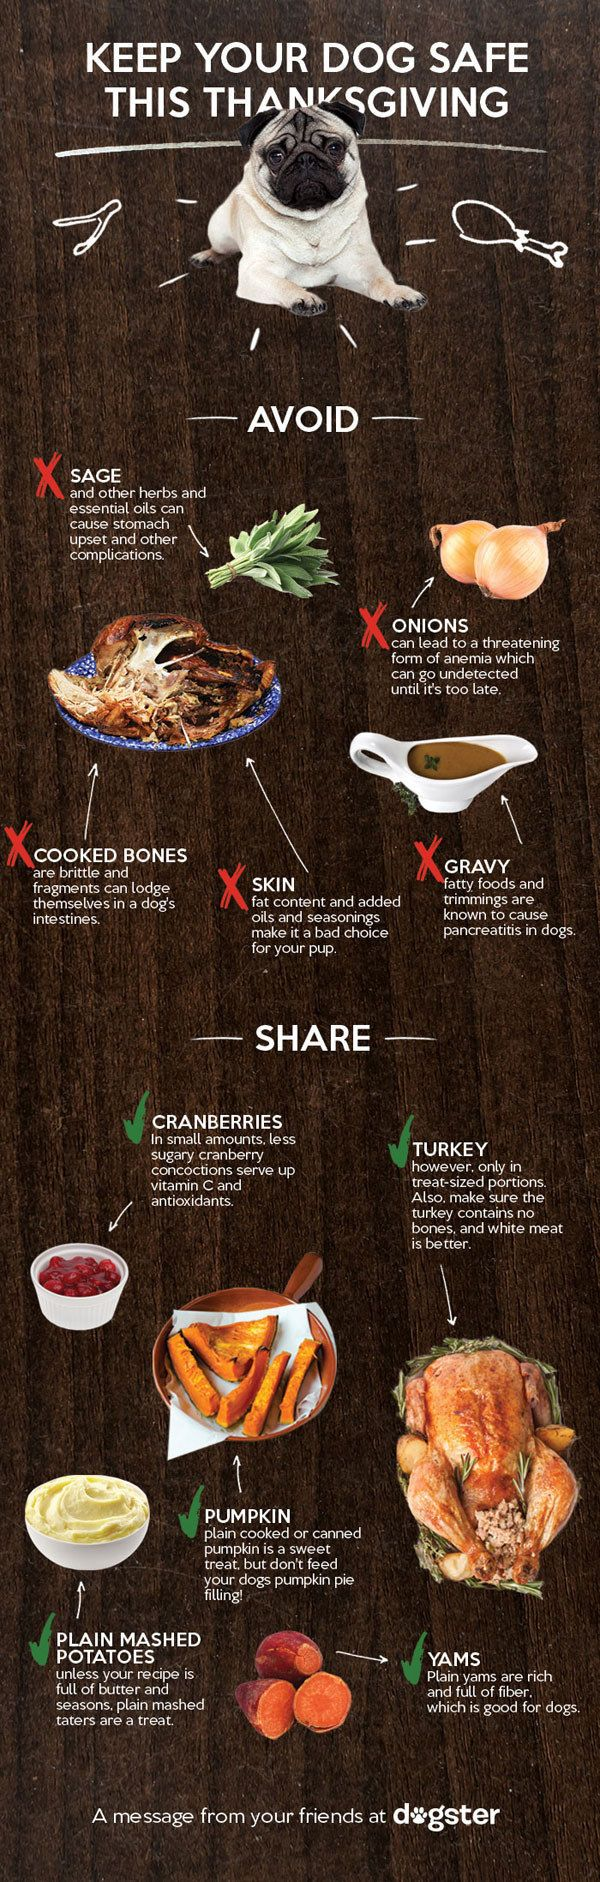 Keep your dog safe during the Holidays and especially with Thanksgiving. The best way to feed your dog, is all raw and they can eat raw bones too.: